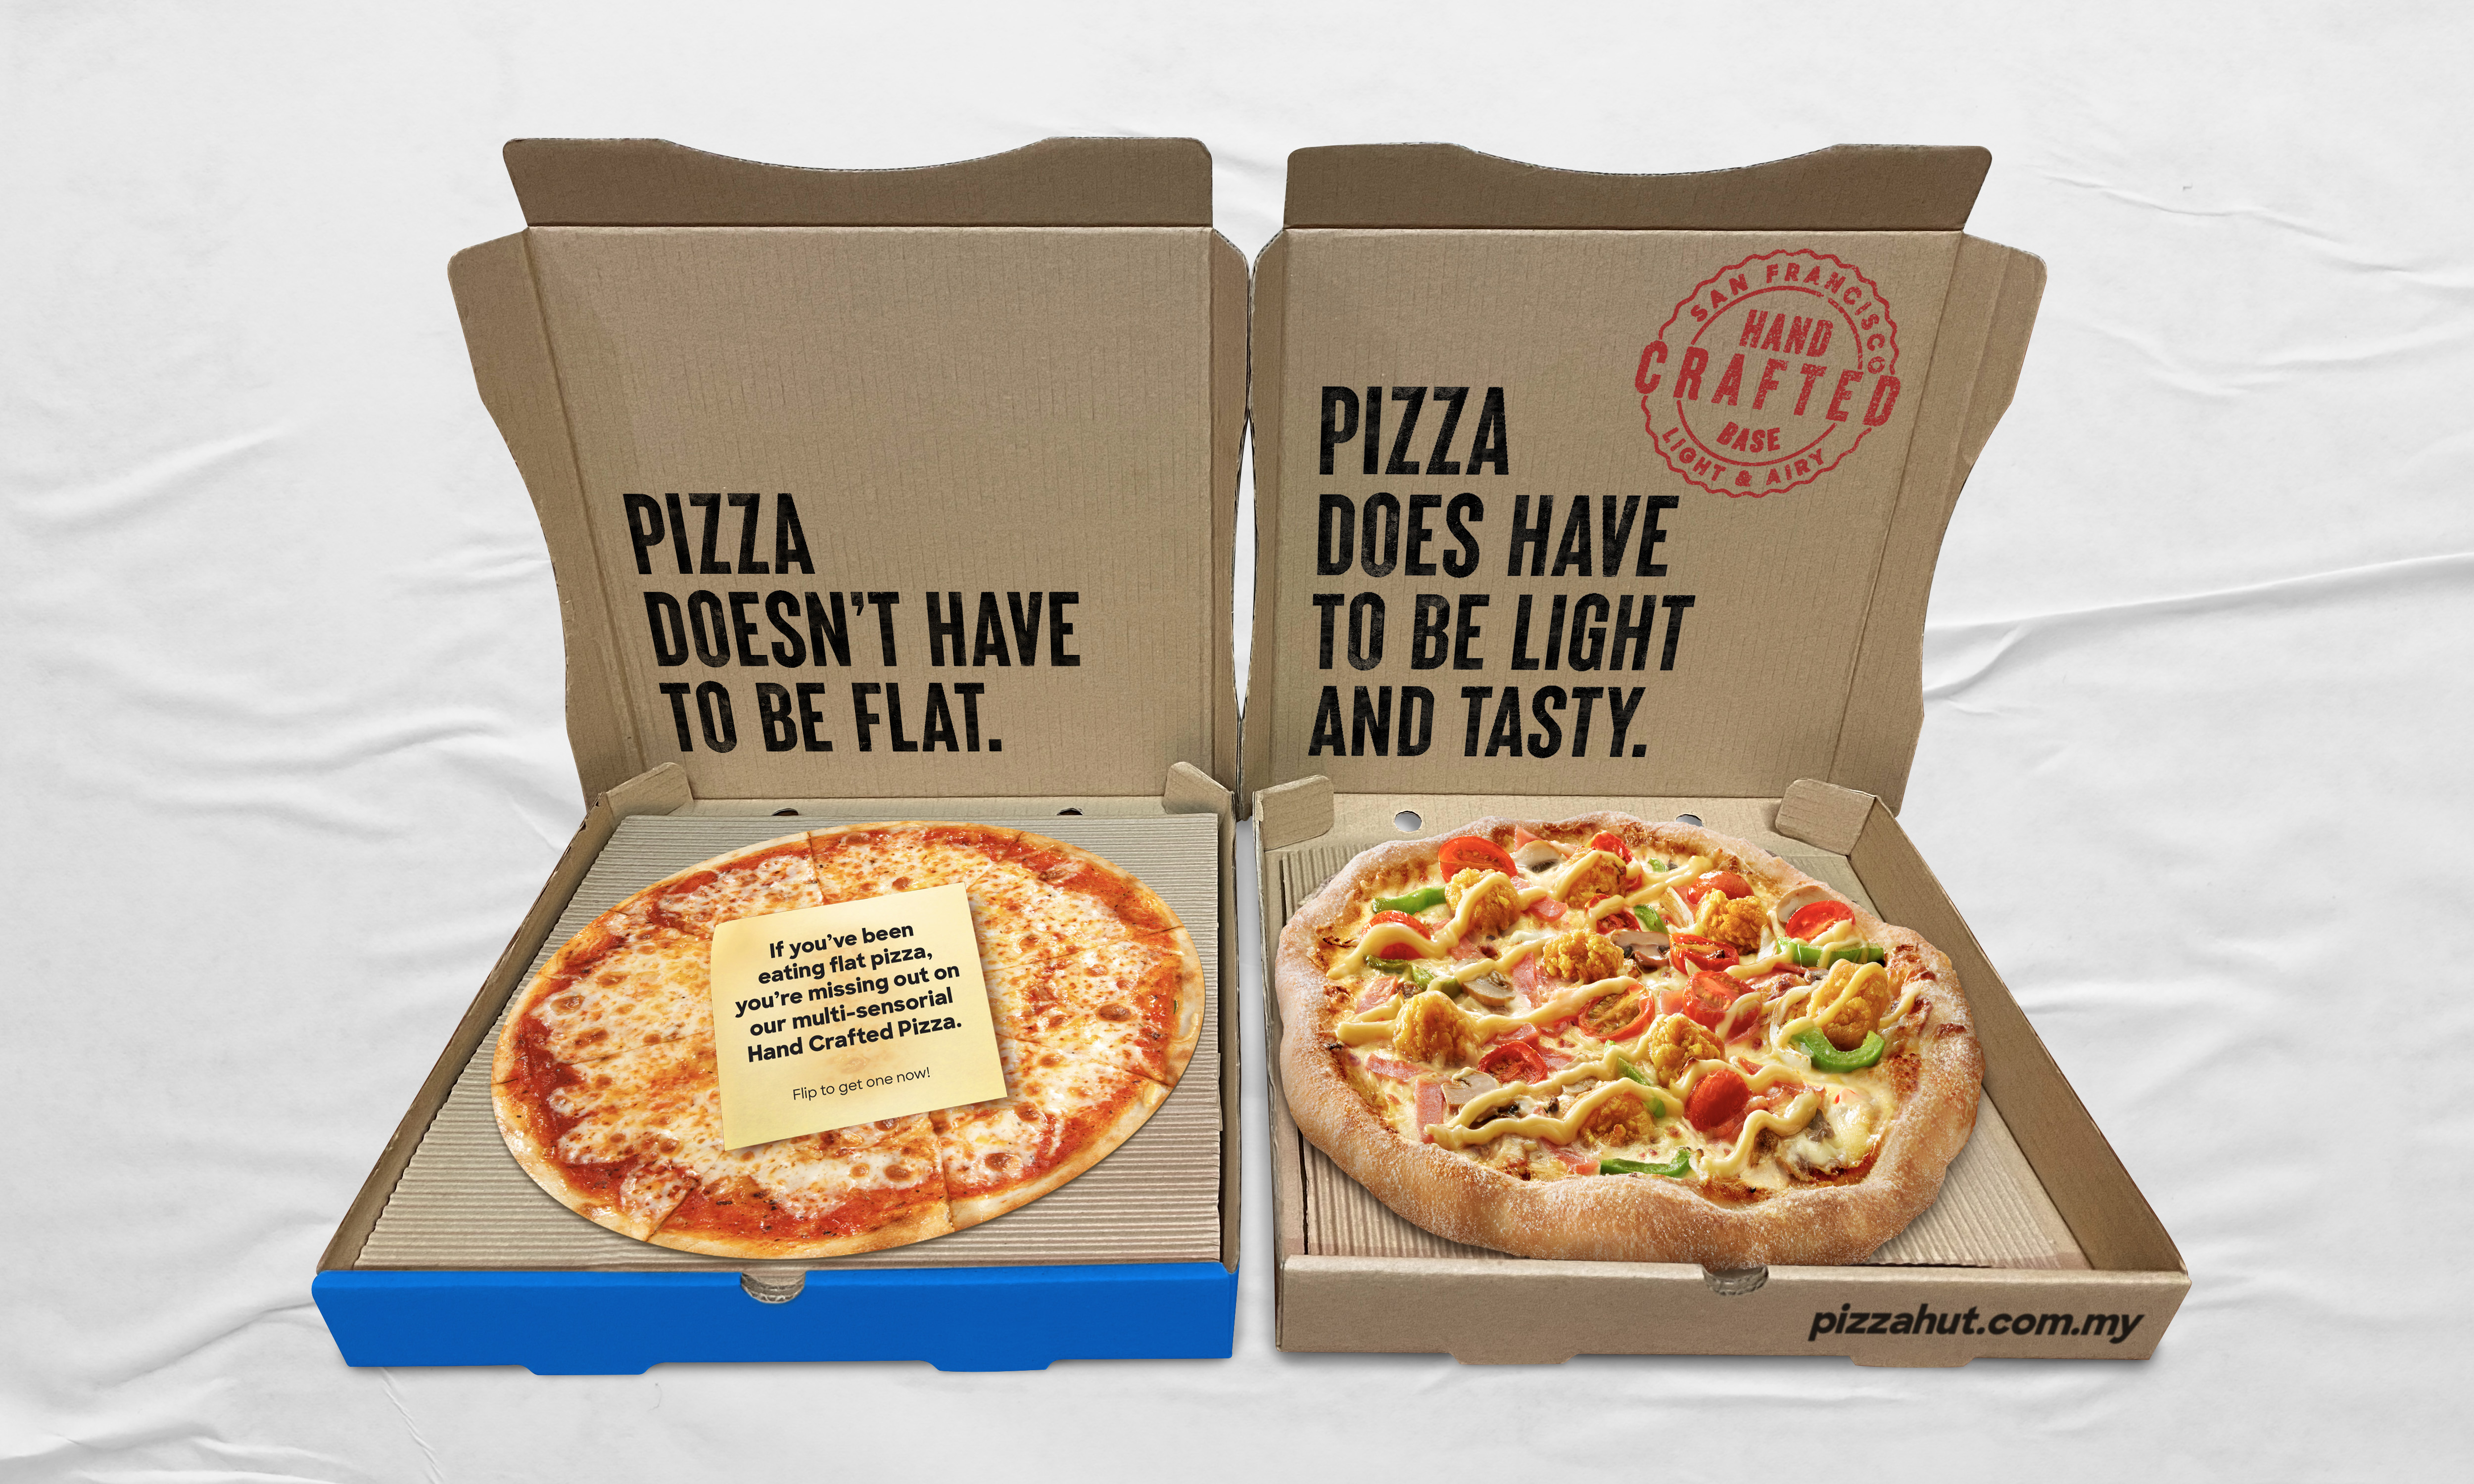 Bored Of Typical Pizzas? Get Pizza Hut's New Hand-Crafted Pizza For FREE!